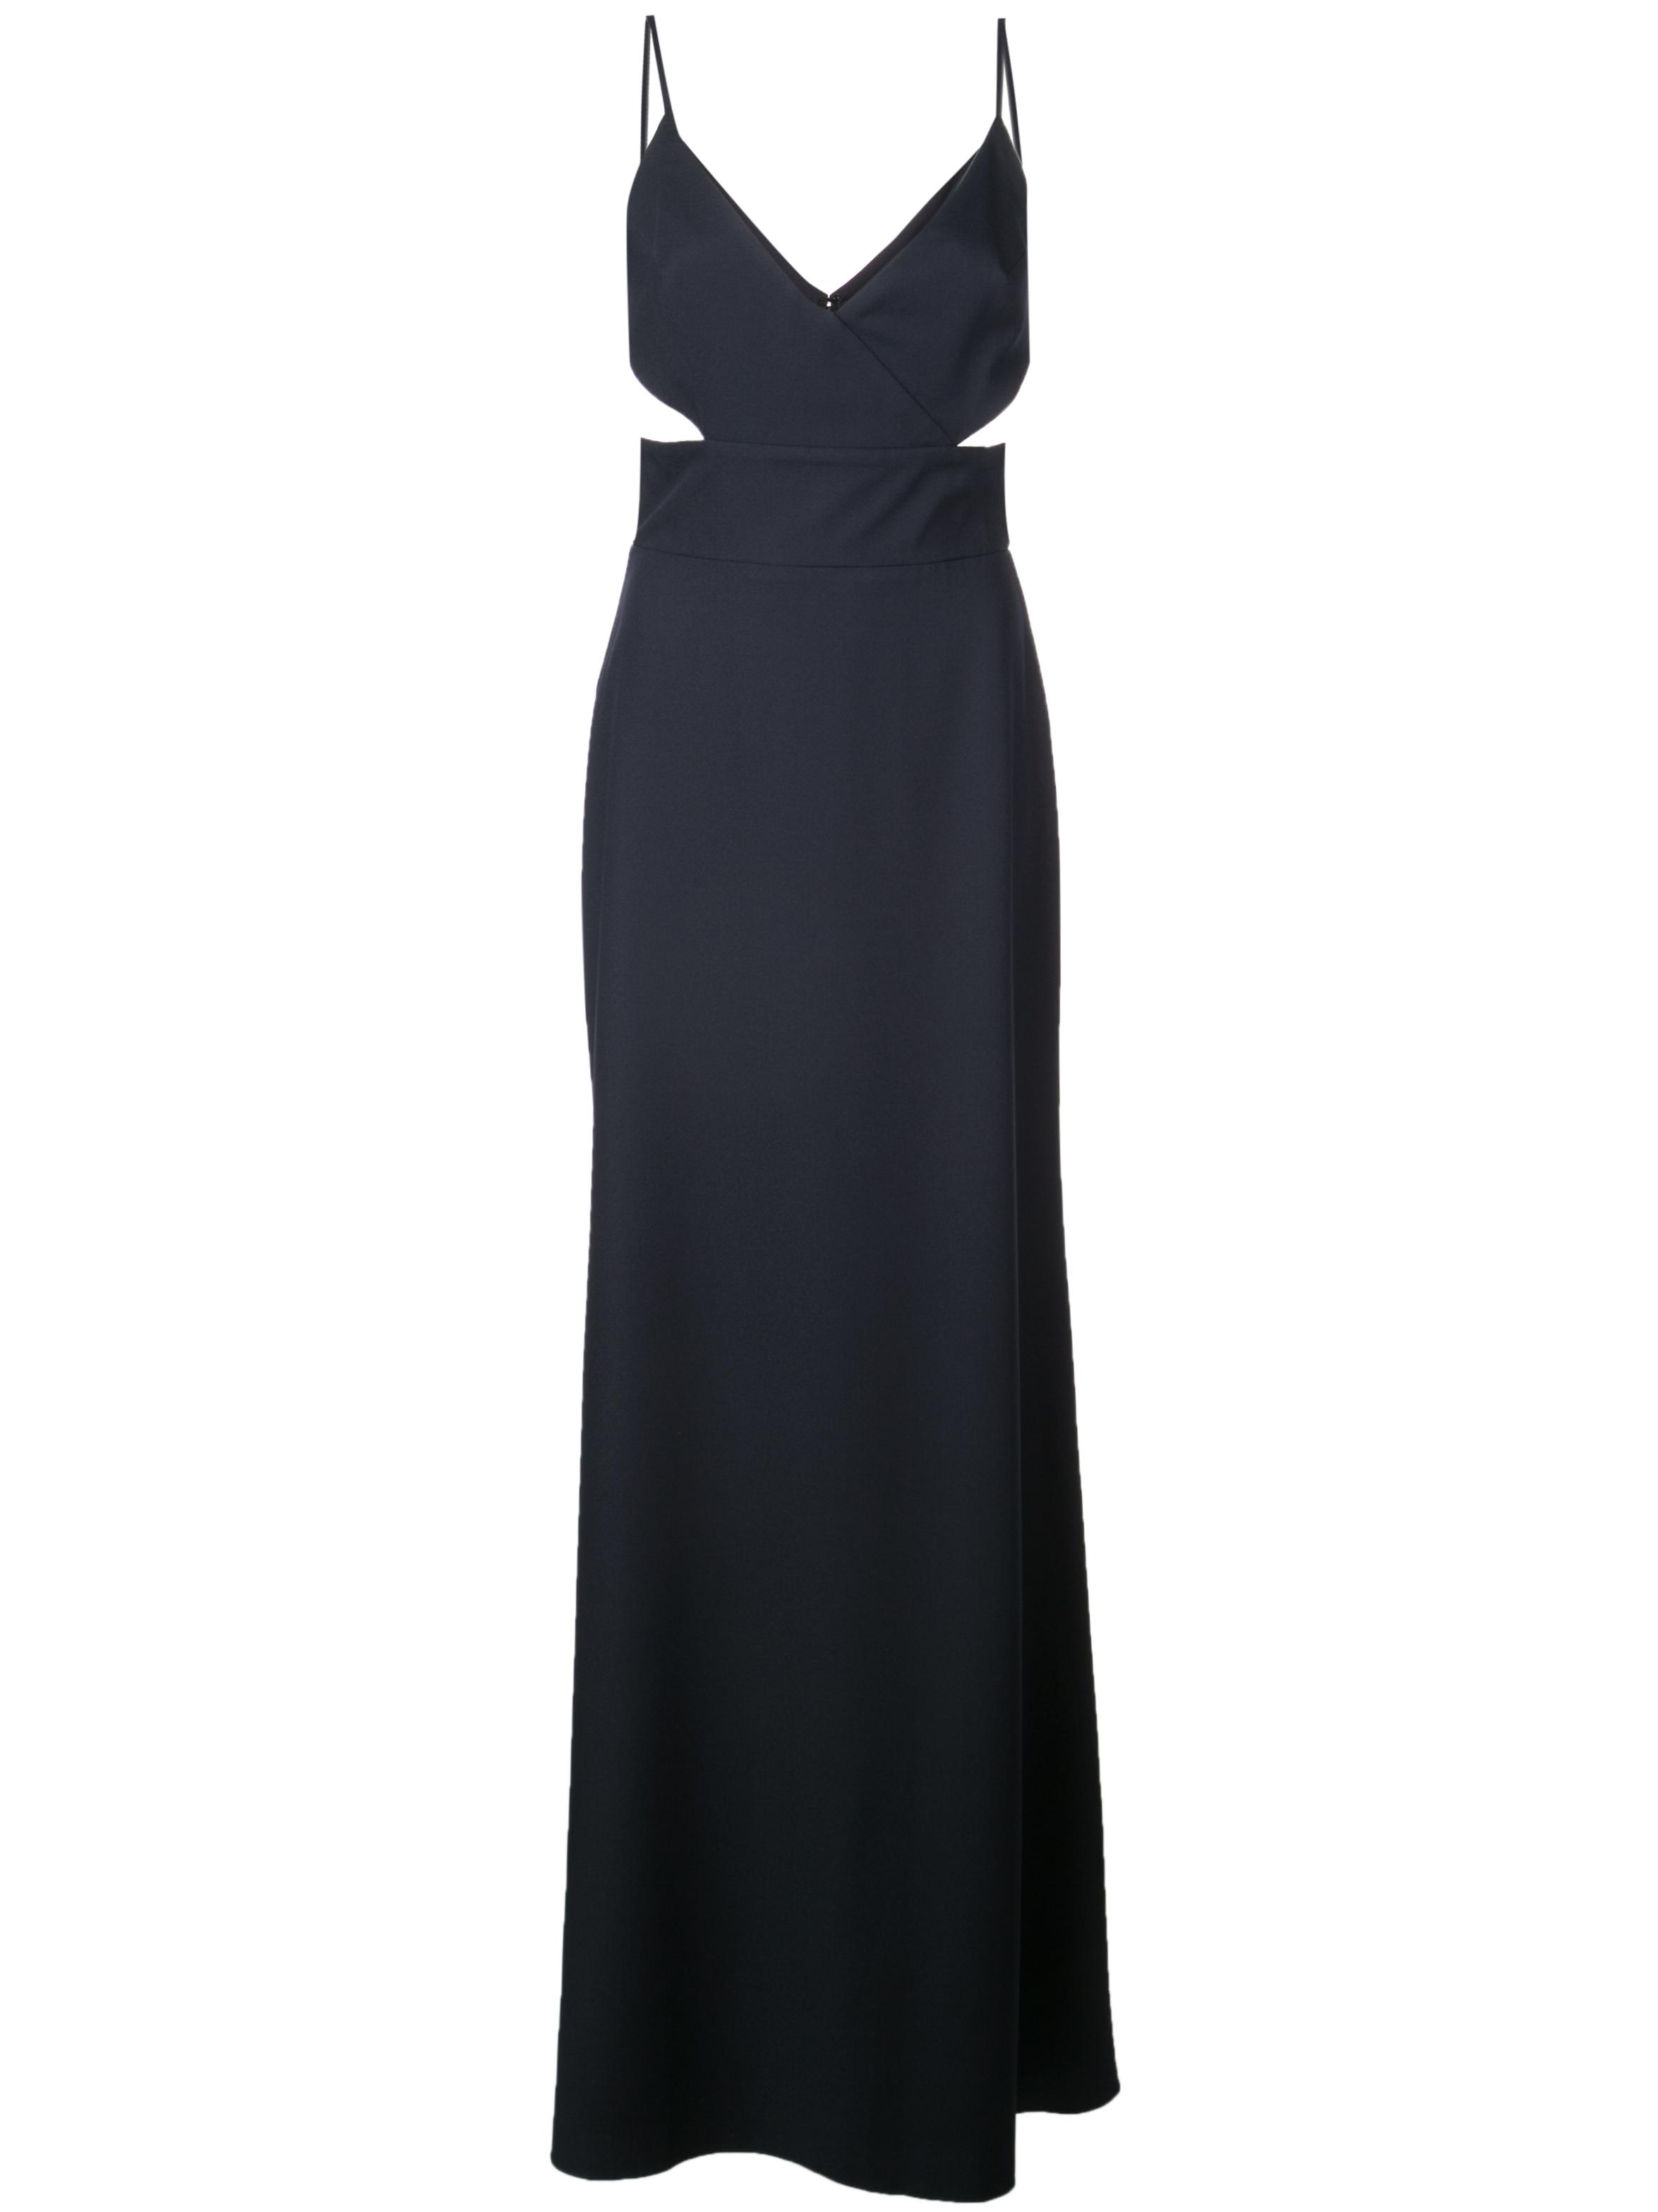 Shiloh Crepe Gown With Cutout